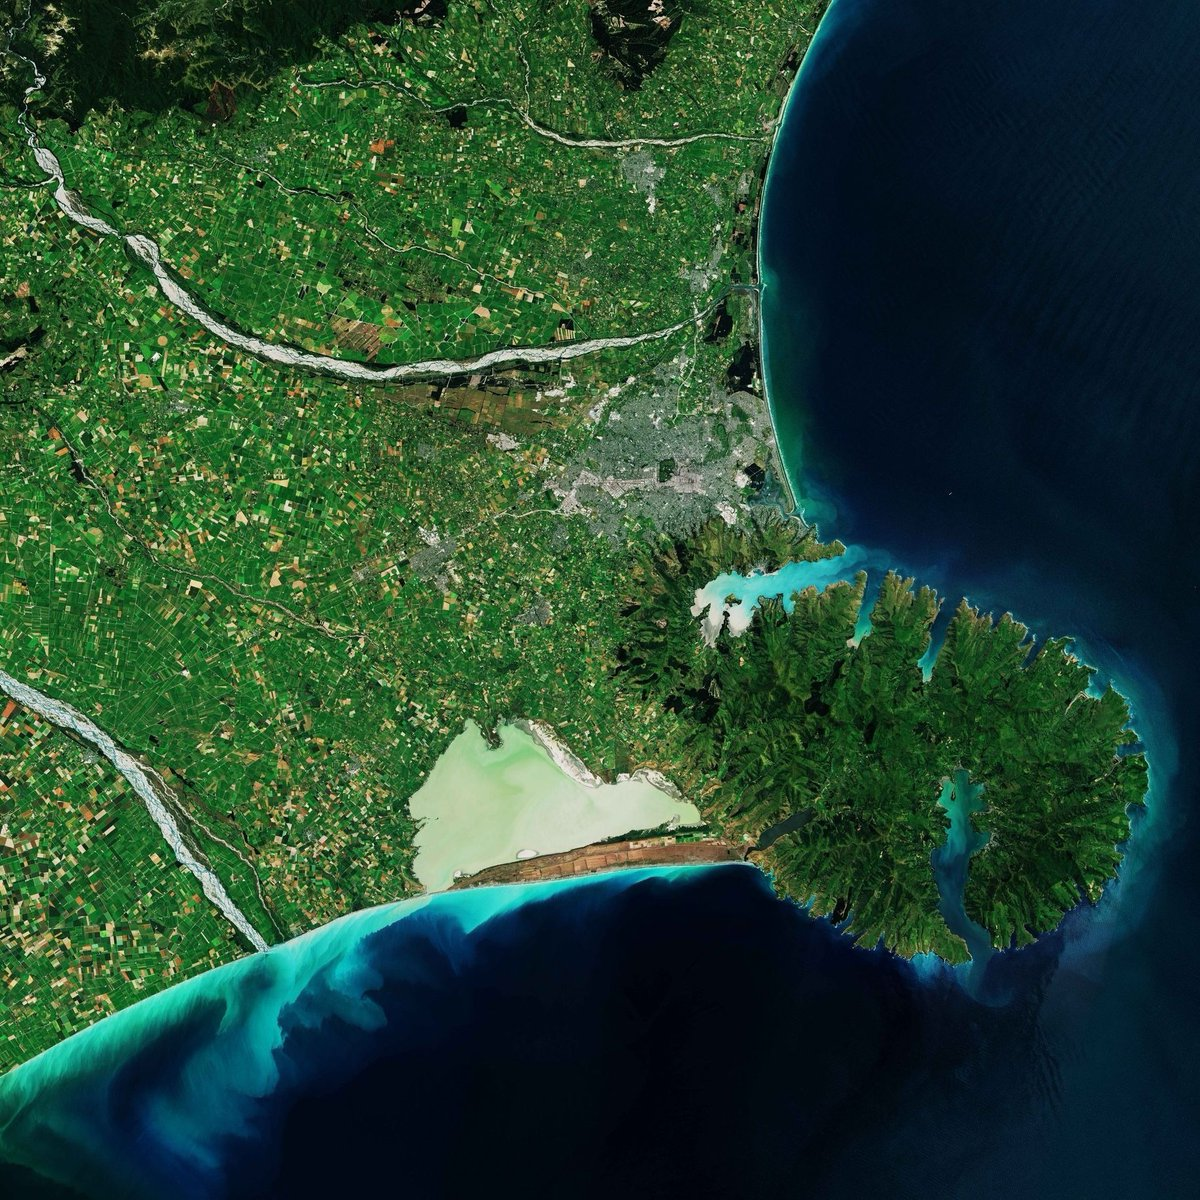 This @CopernicusEU #Sentinel2 image taken on 4 January 2019 shows the Banks Peninsula on the South Island of New Zealand. Visible in the bottom-right of the image, the peninsula consists of two overlapping extinct volcanoes 👉